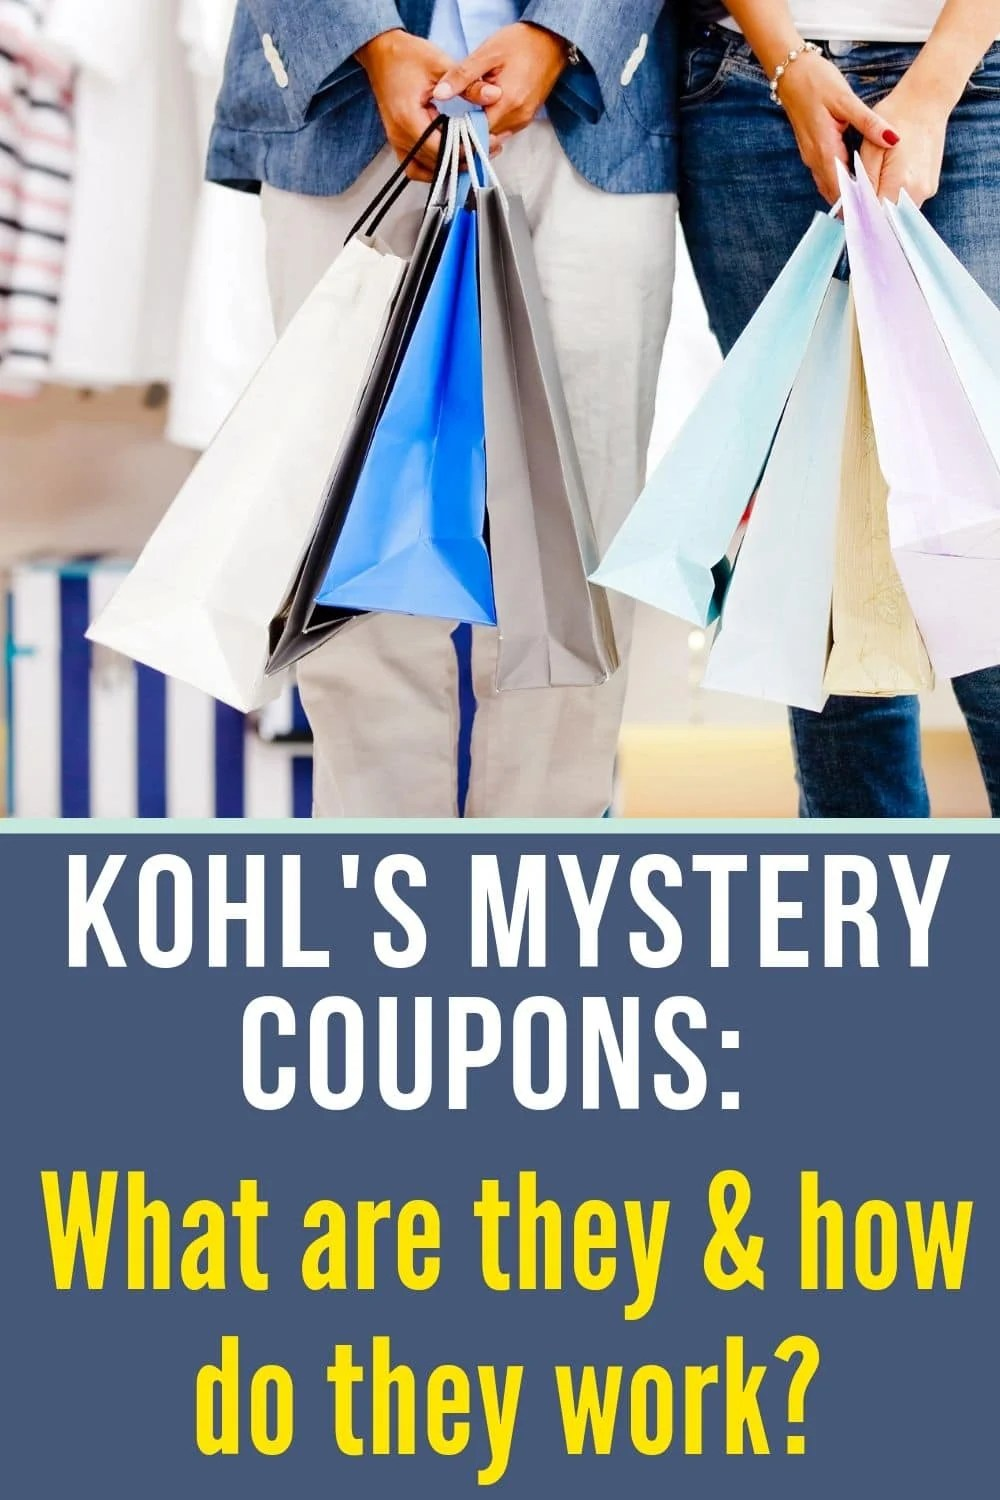 Shopping bags for Kohl's mystery coupon codes and how they work